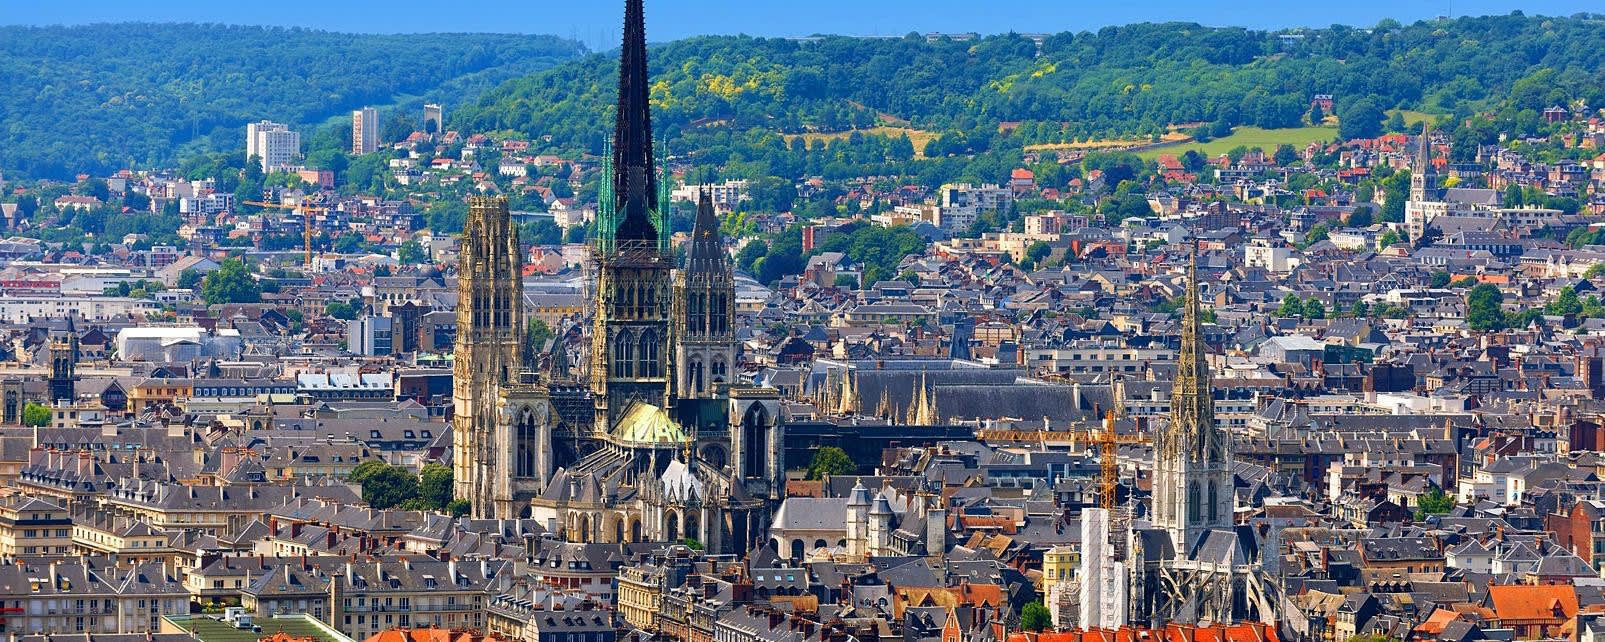 Rouen France where Albena lives now